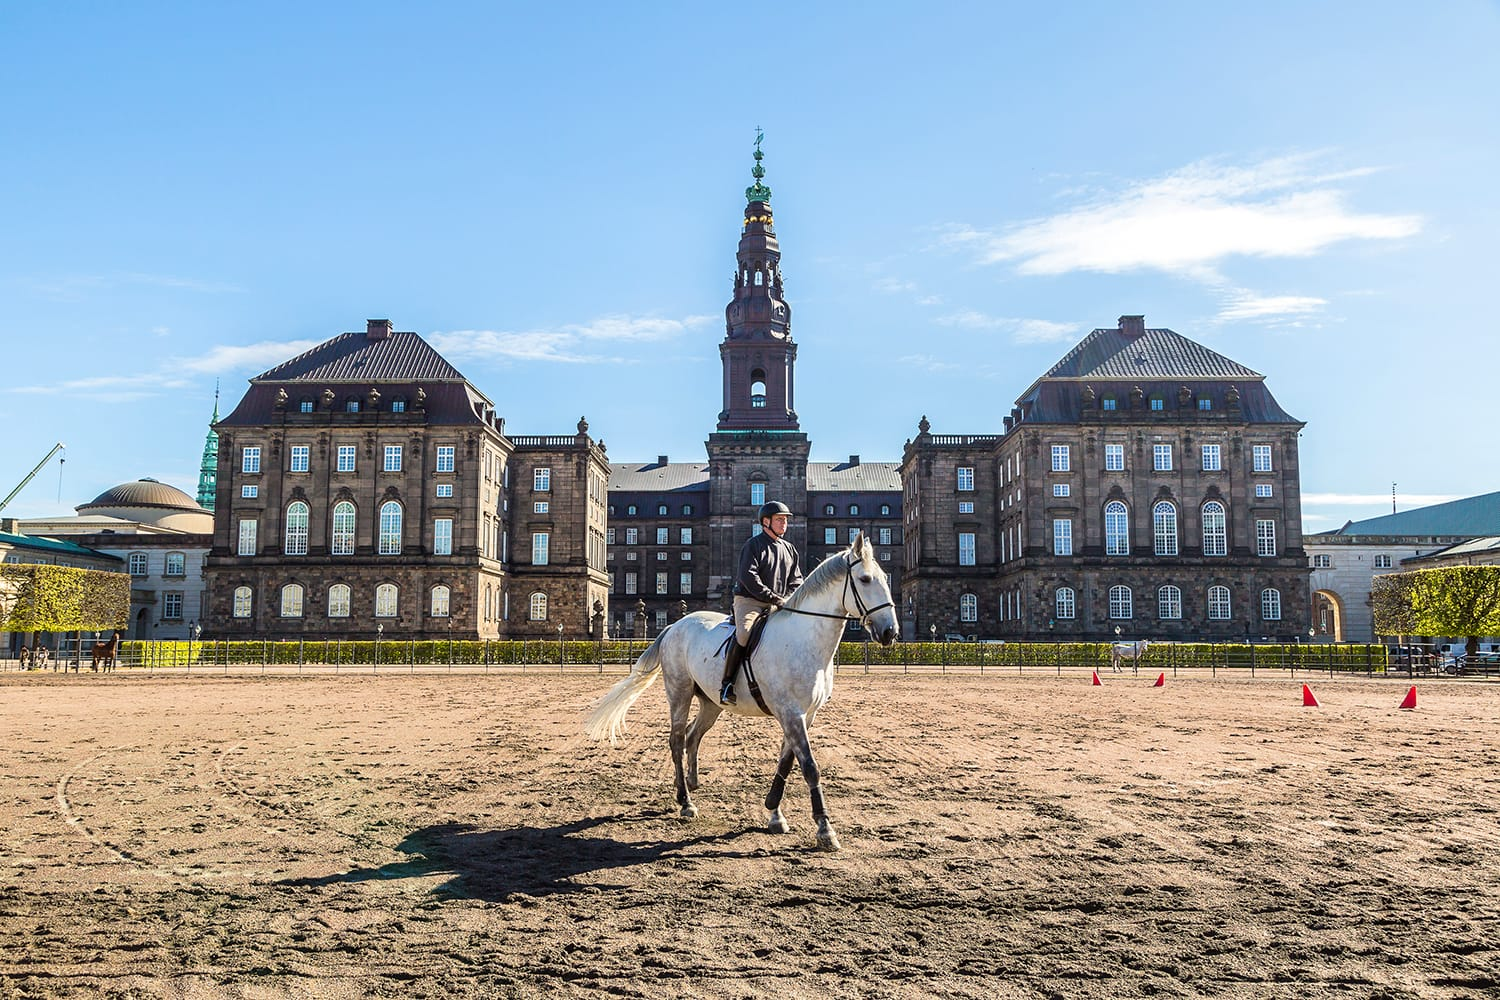 The royal stables at the Christiansborg palace in Copenhagen, Denmark